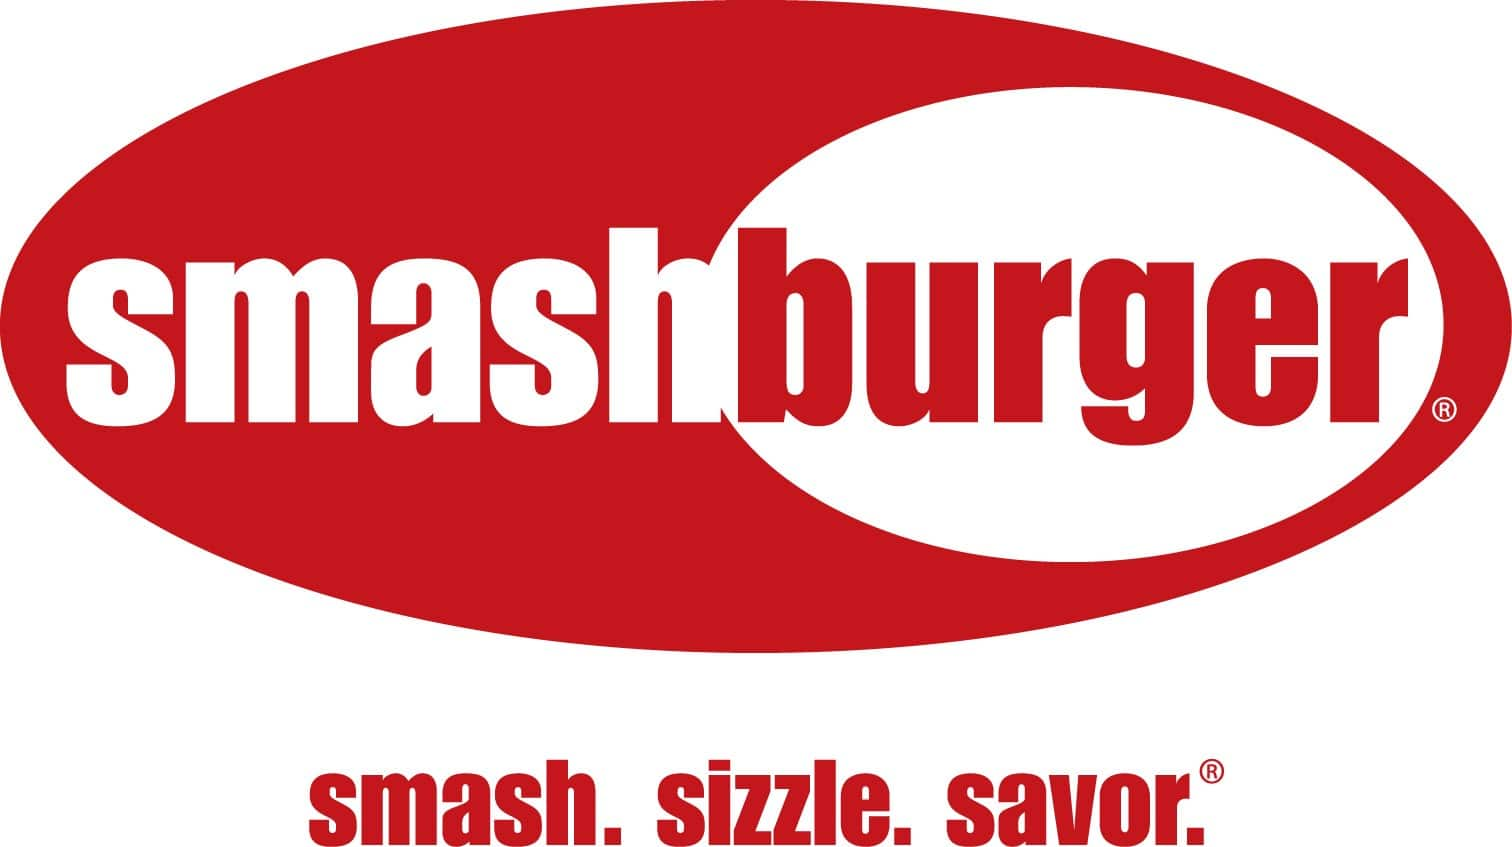 Smashburger: Buy One Entree, Get One Entree For $1 Coupon - Expires 12/10/17